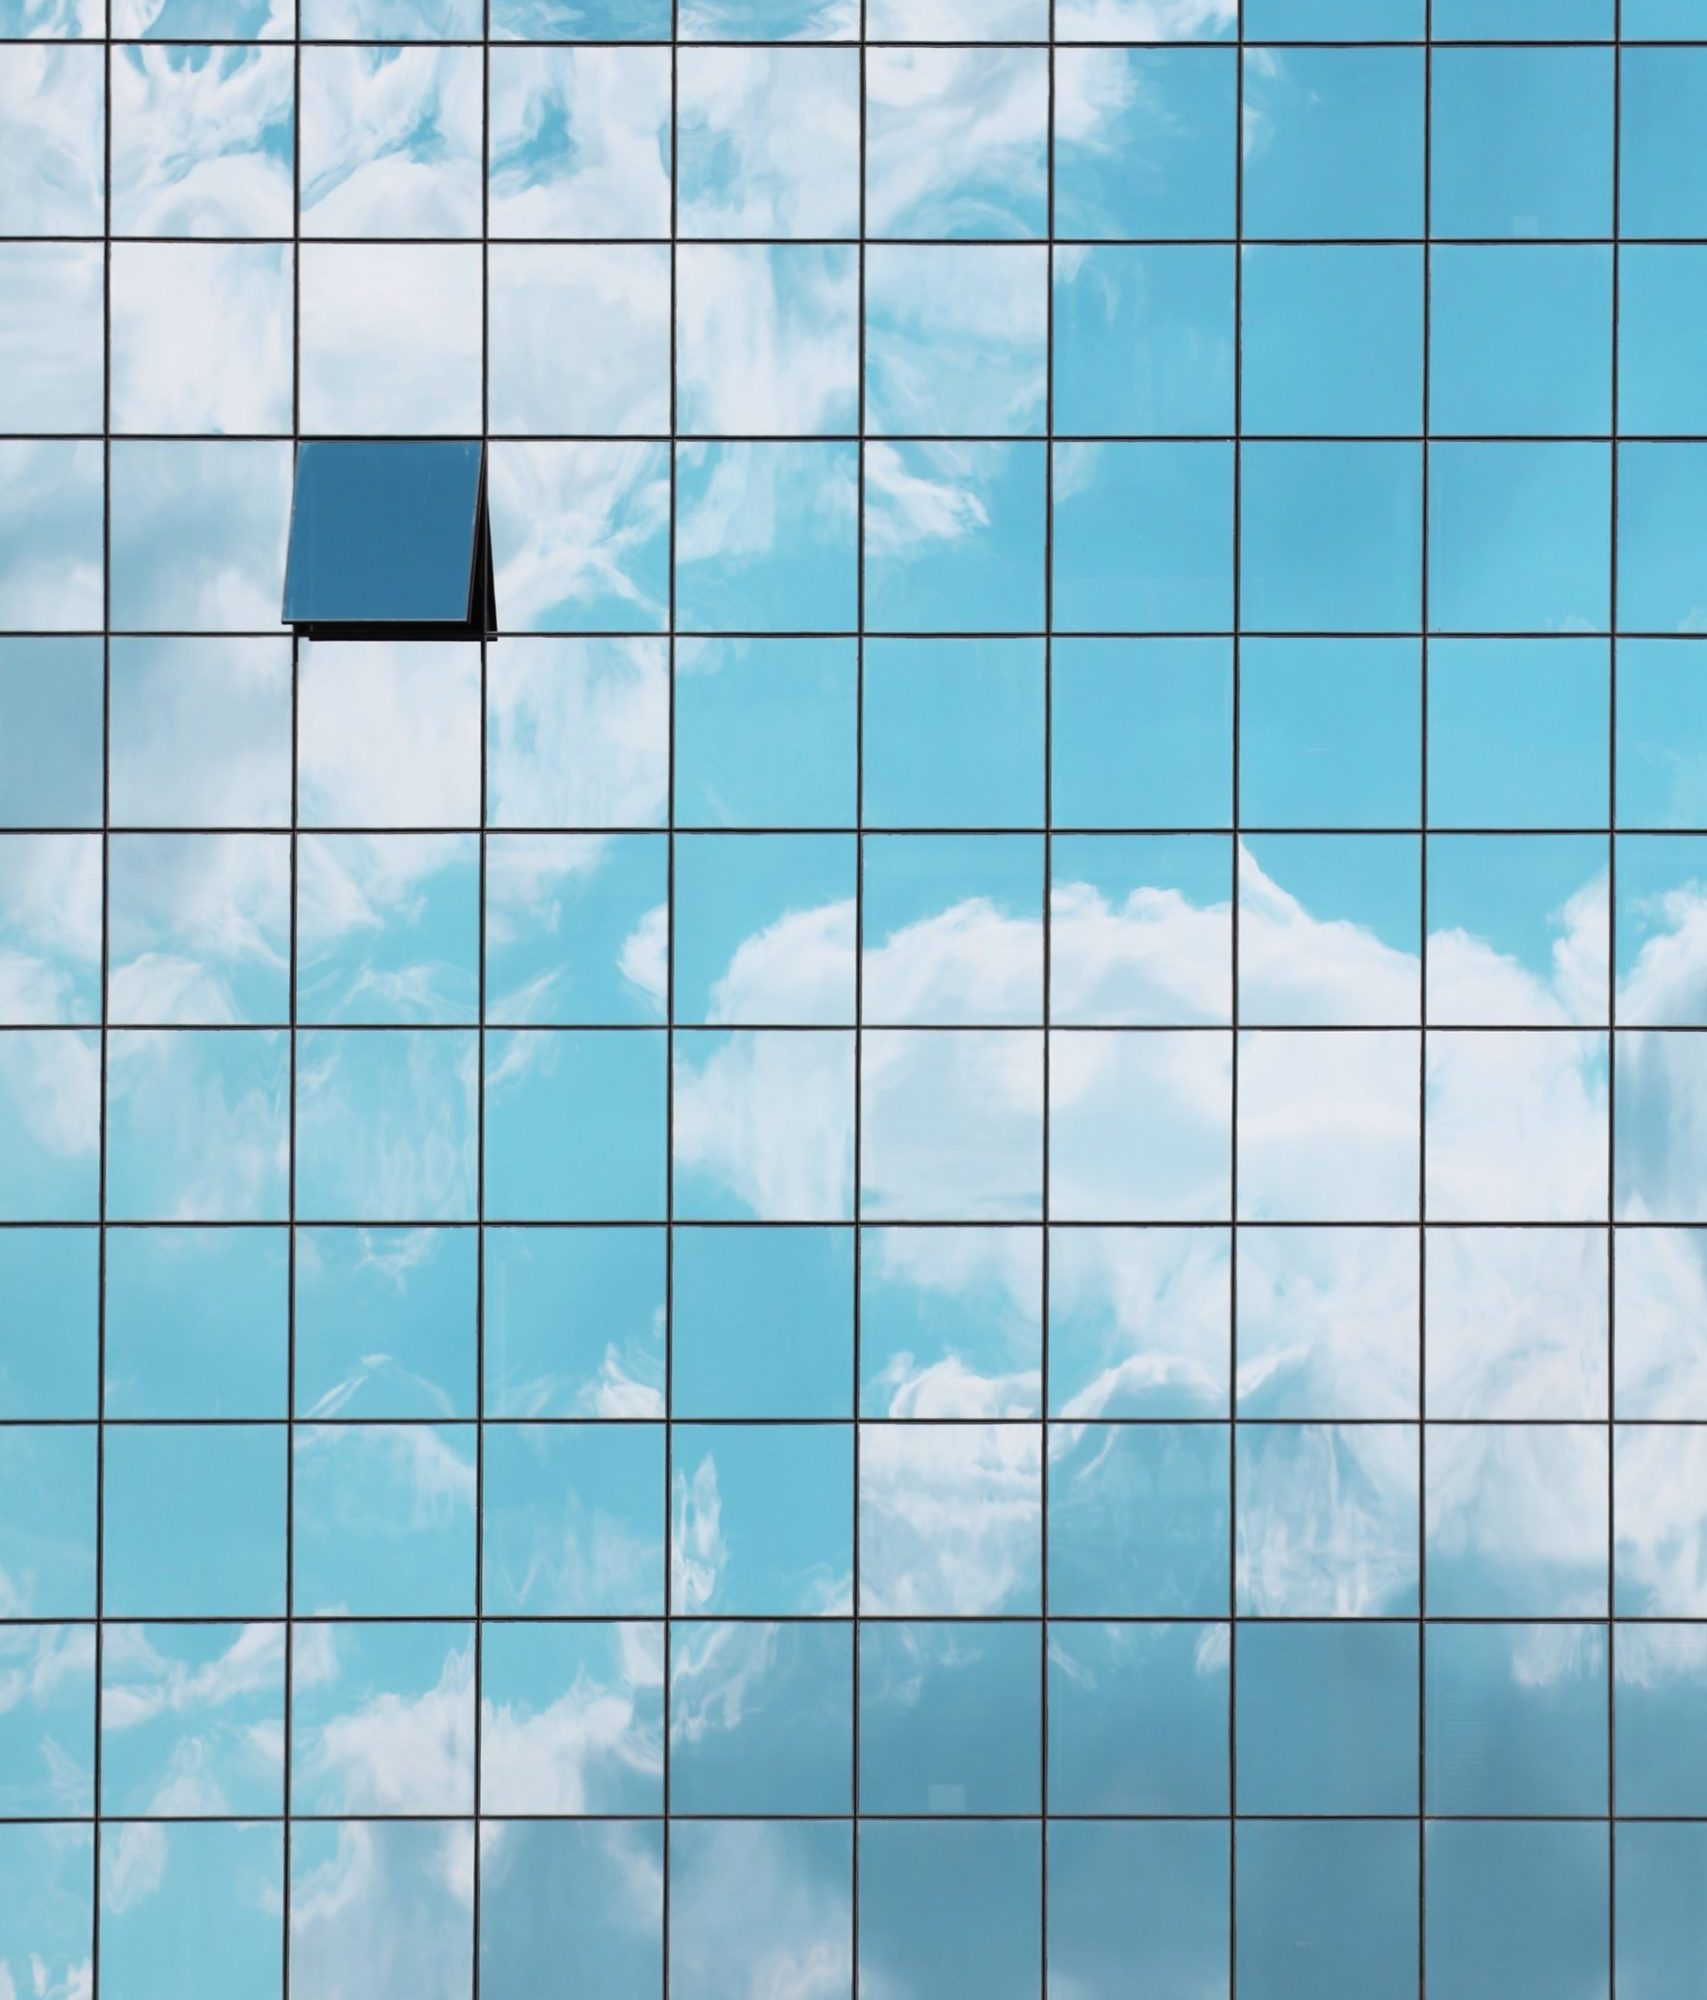 building-clouds-facade-glass-panels-412842